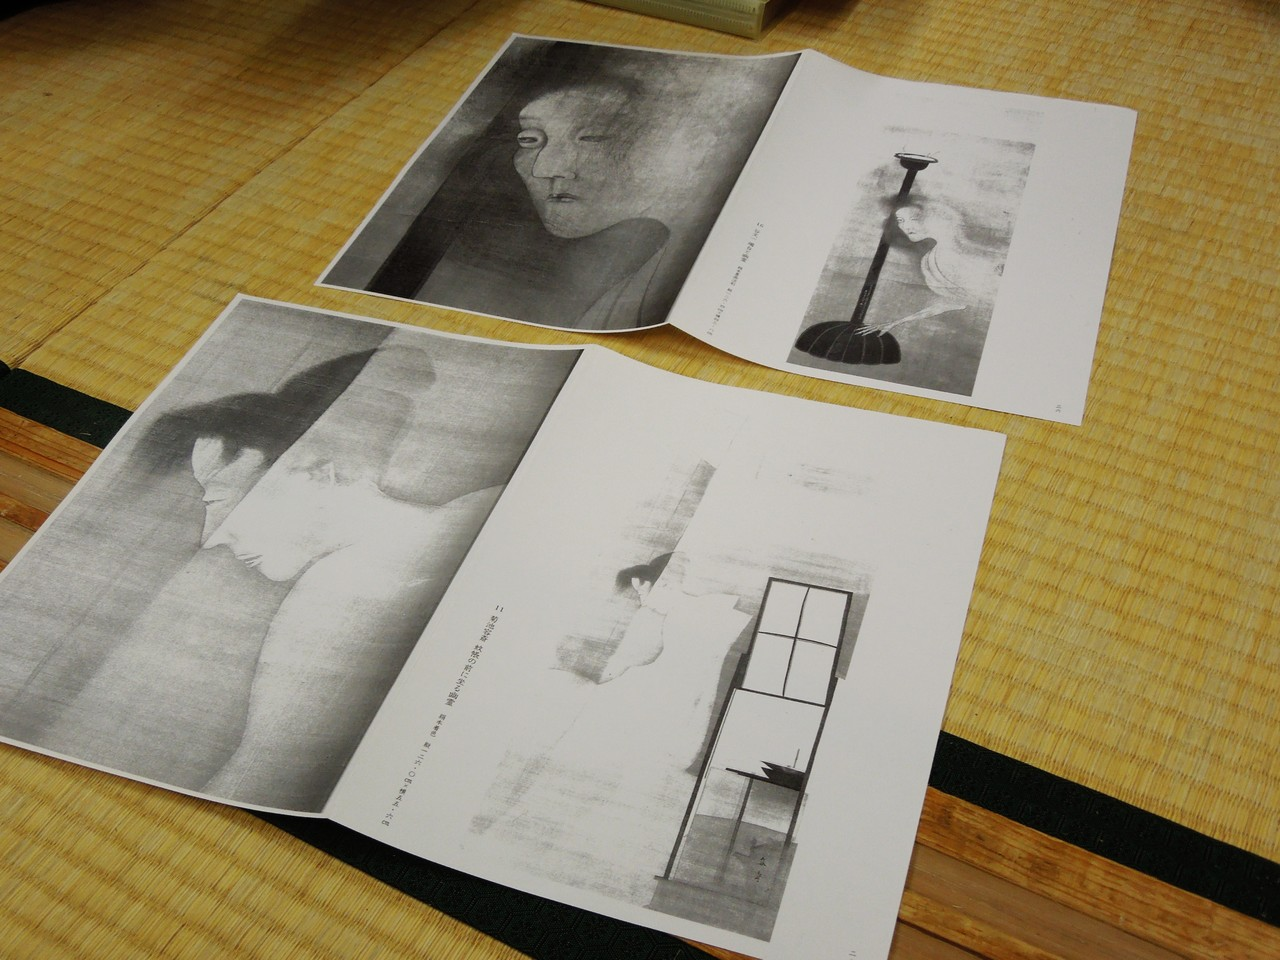 The image from Hijikata butoh-fu (1) Ghosts appear and disappear as if light and shadow